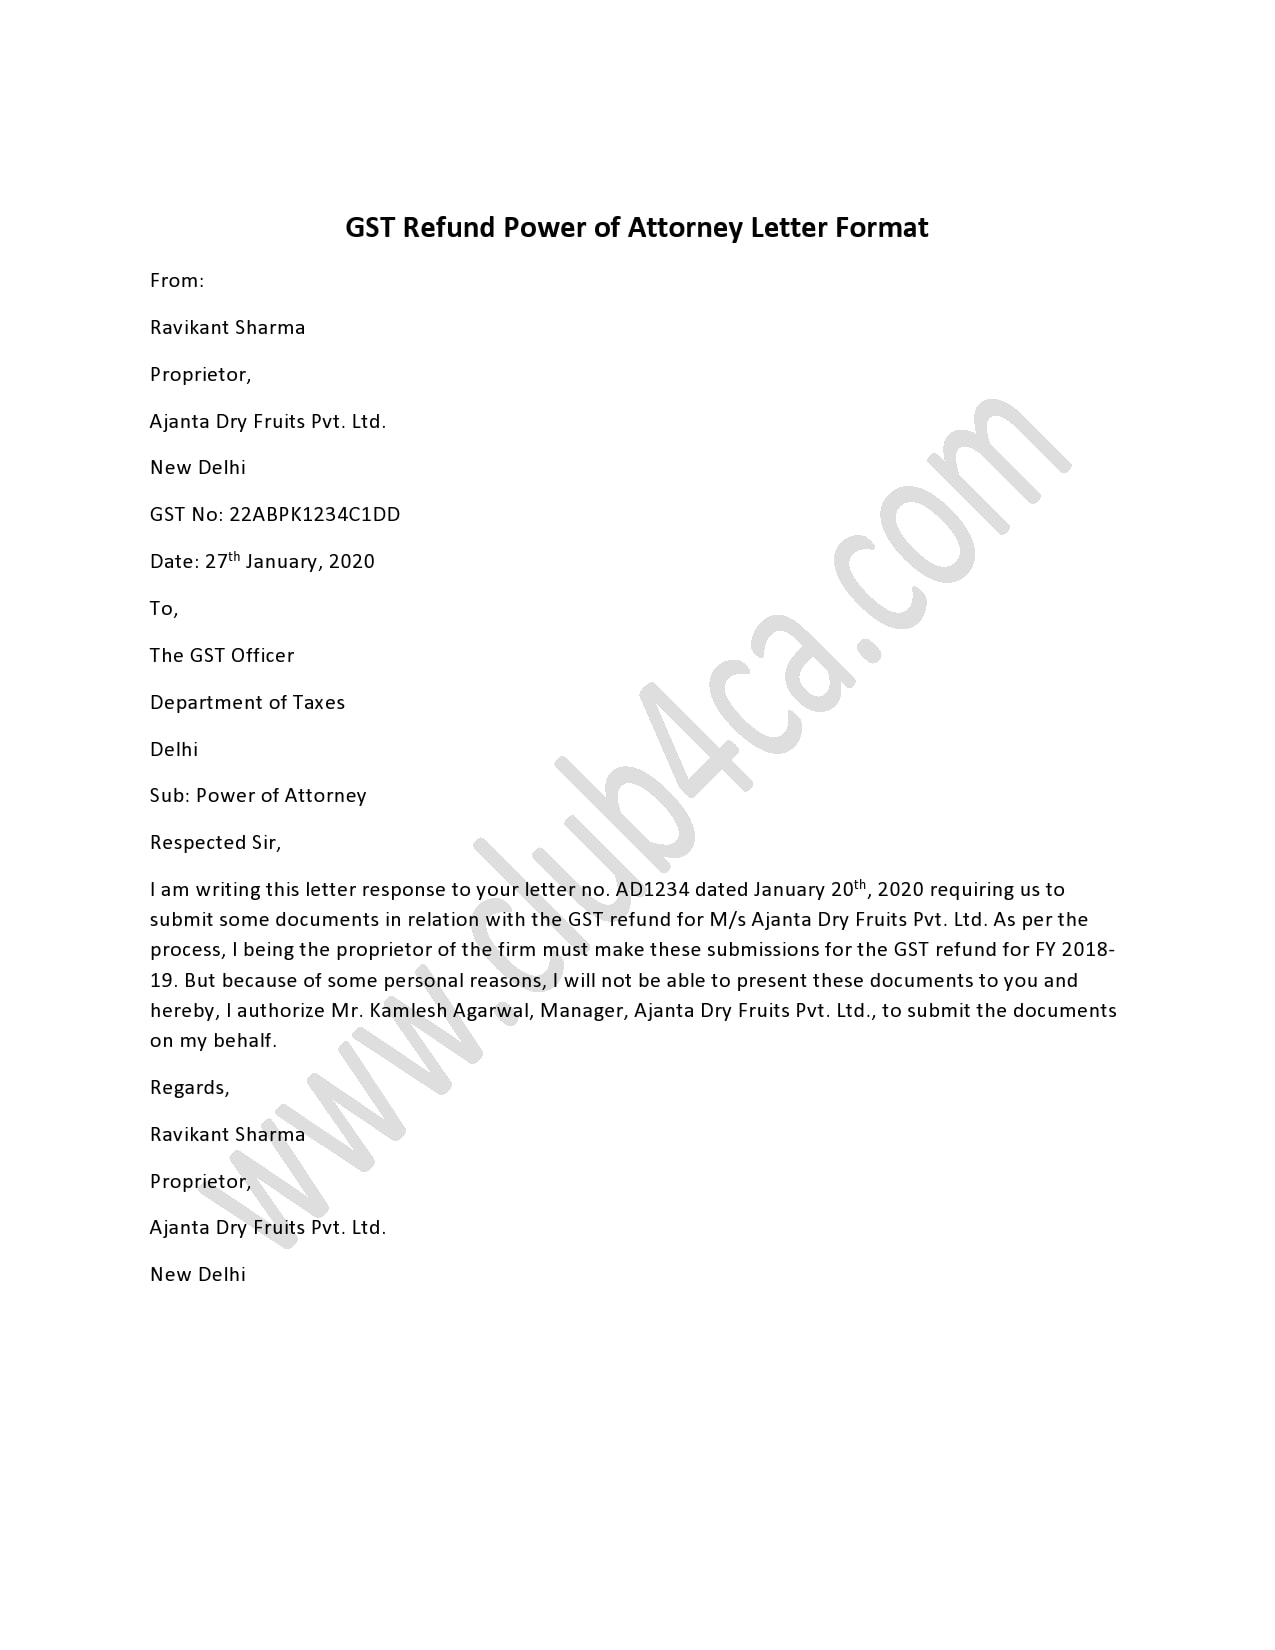 power of attorney letter 21